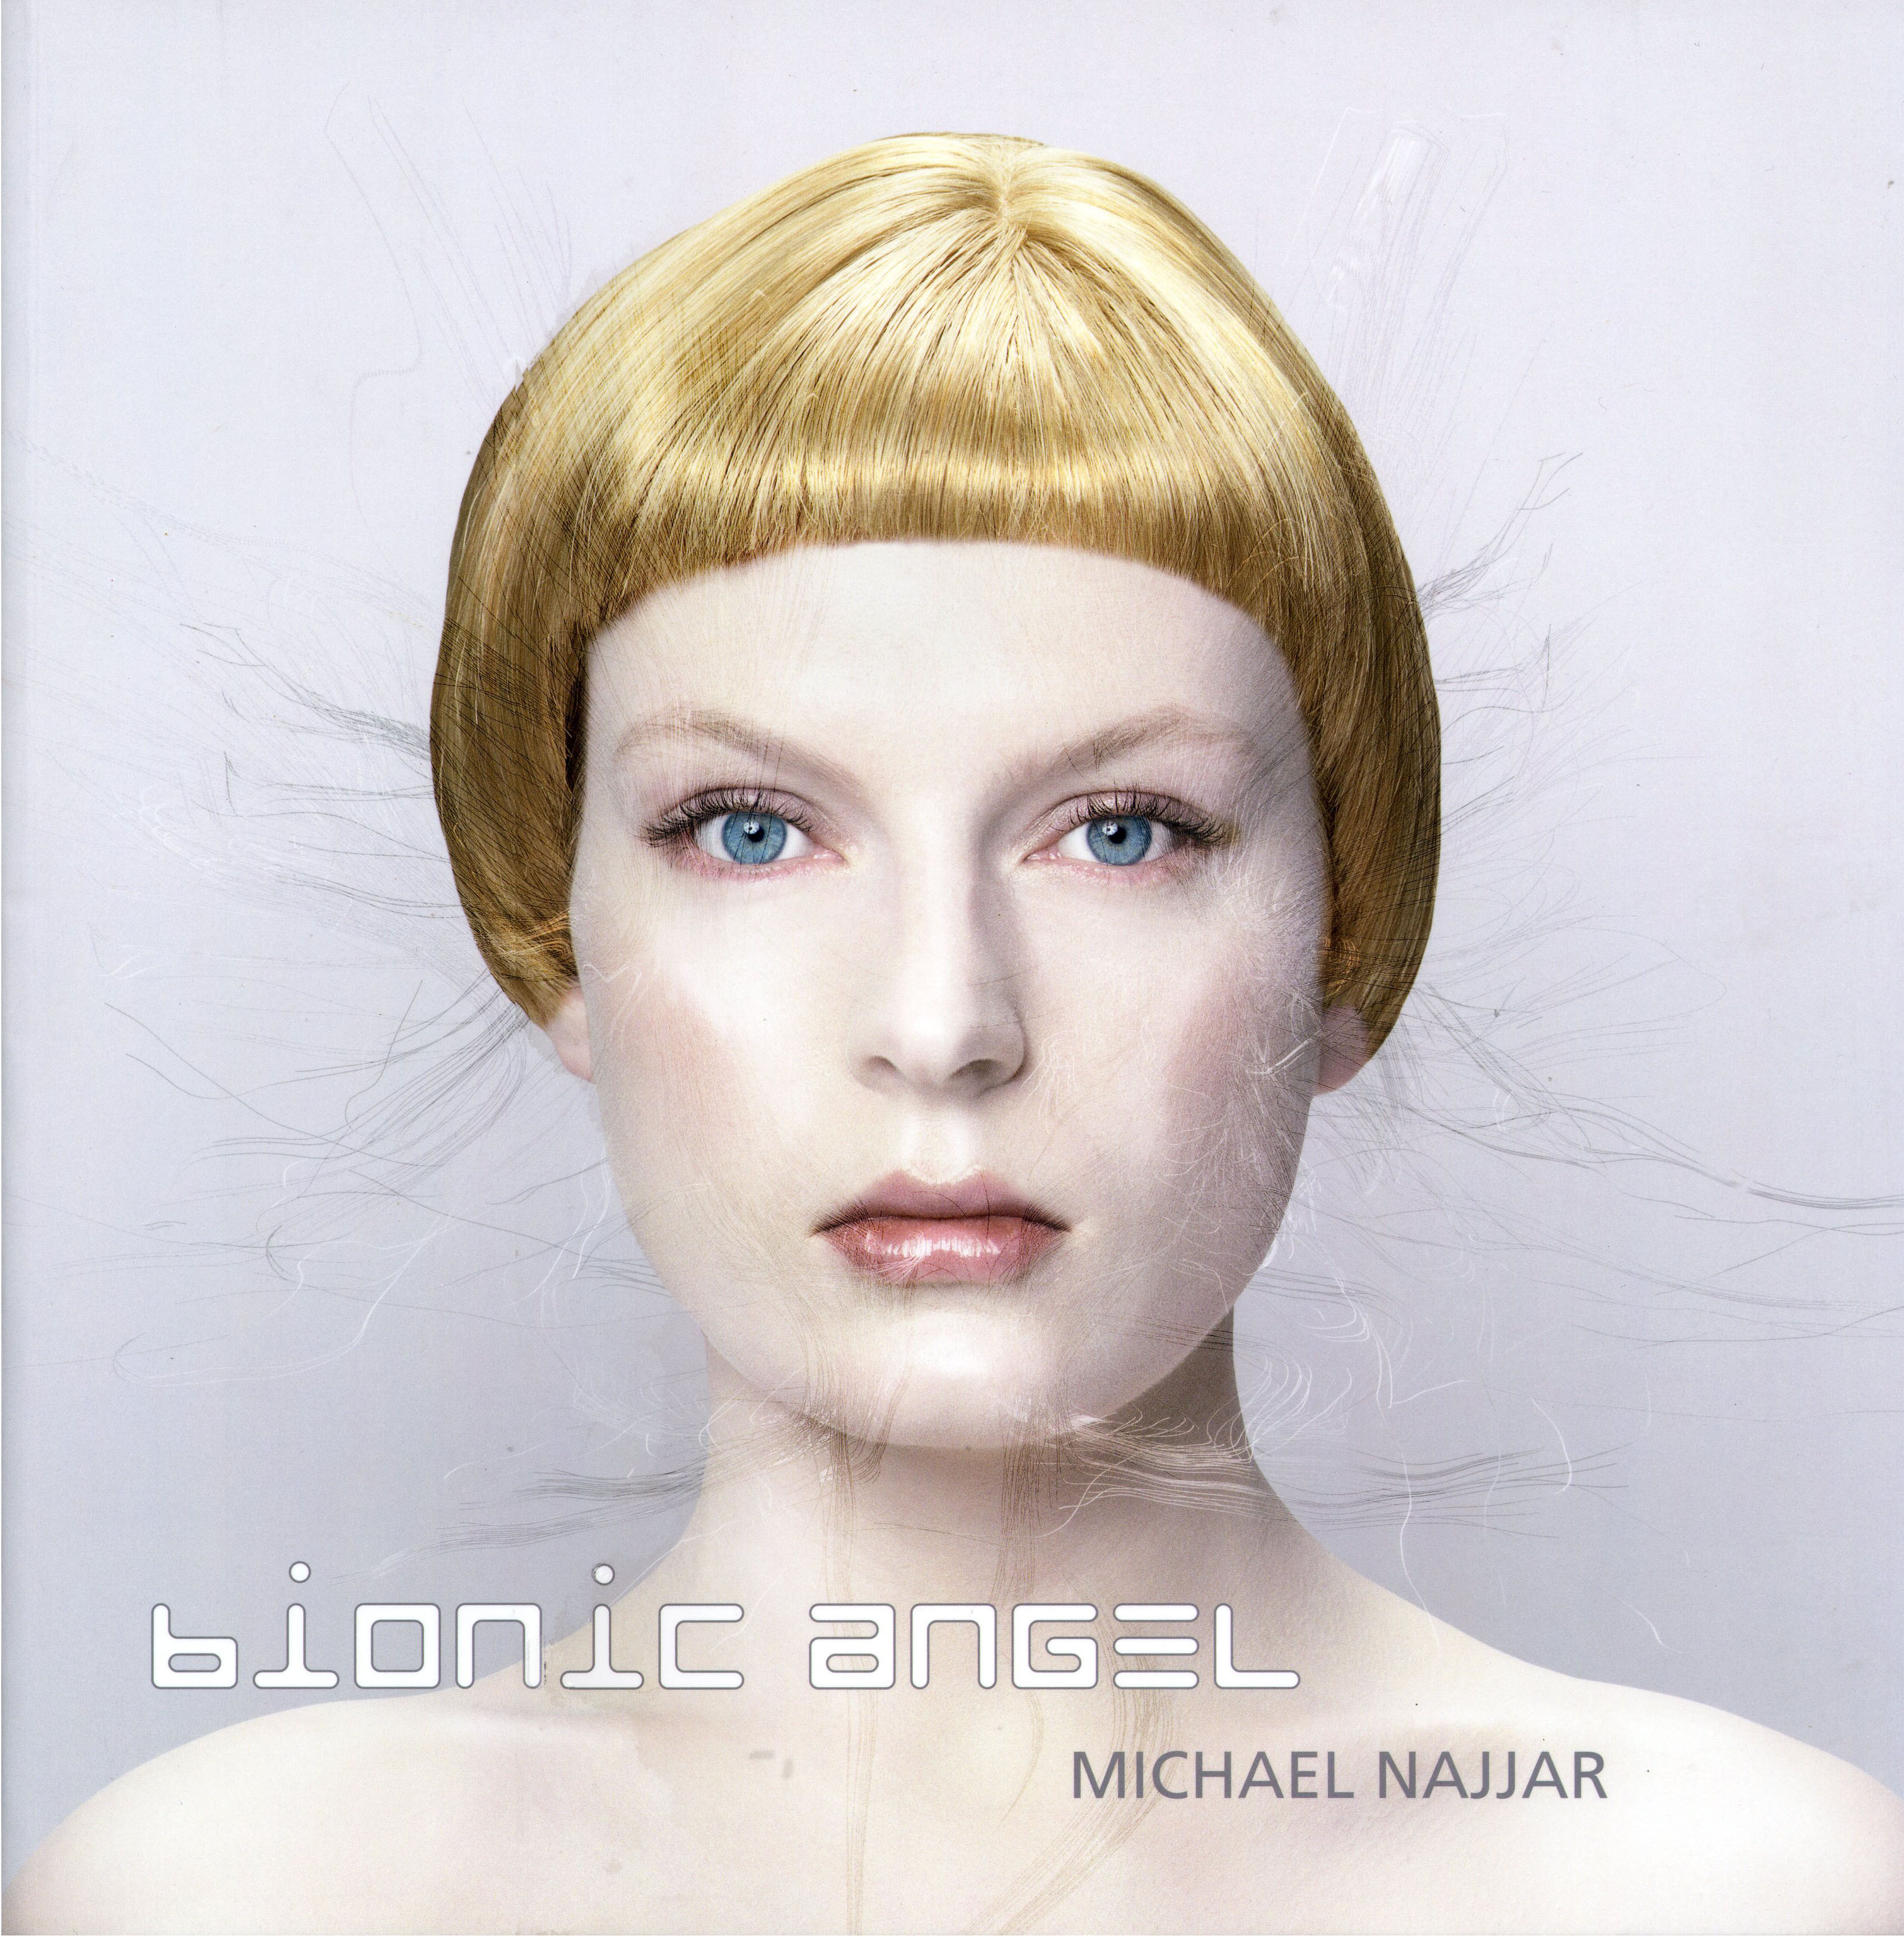 MICHAEL NAJJAR: bionic angel